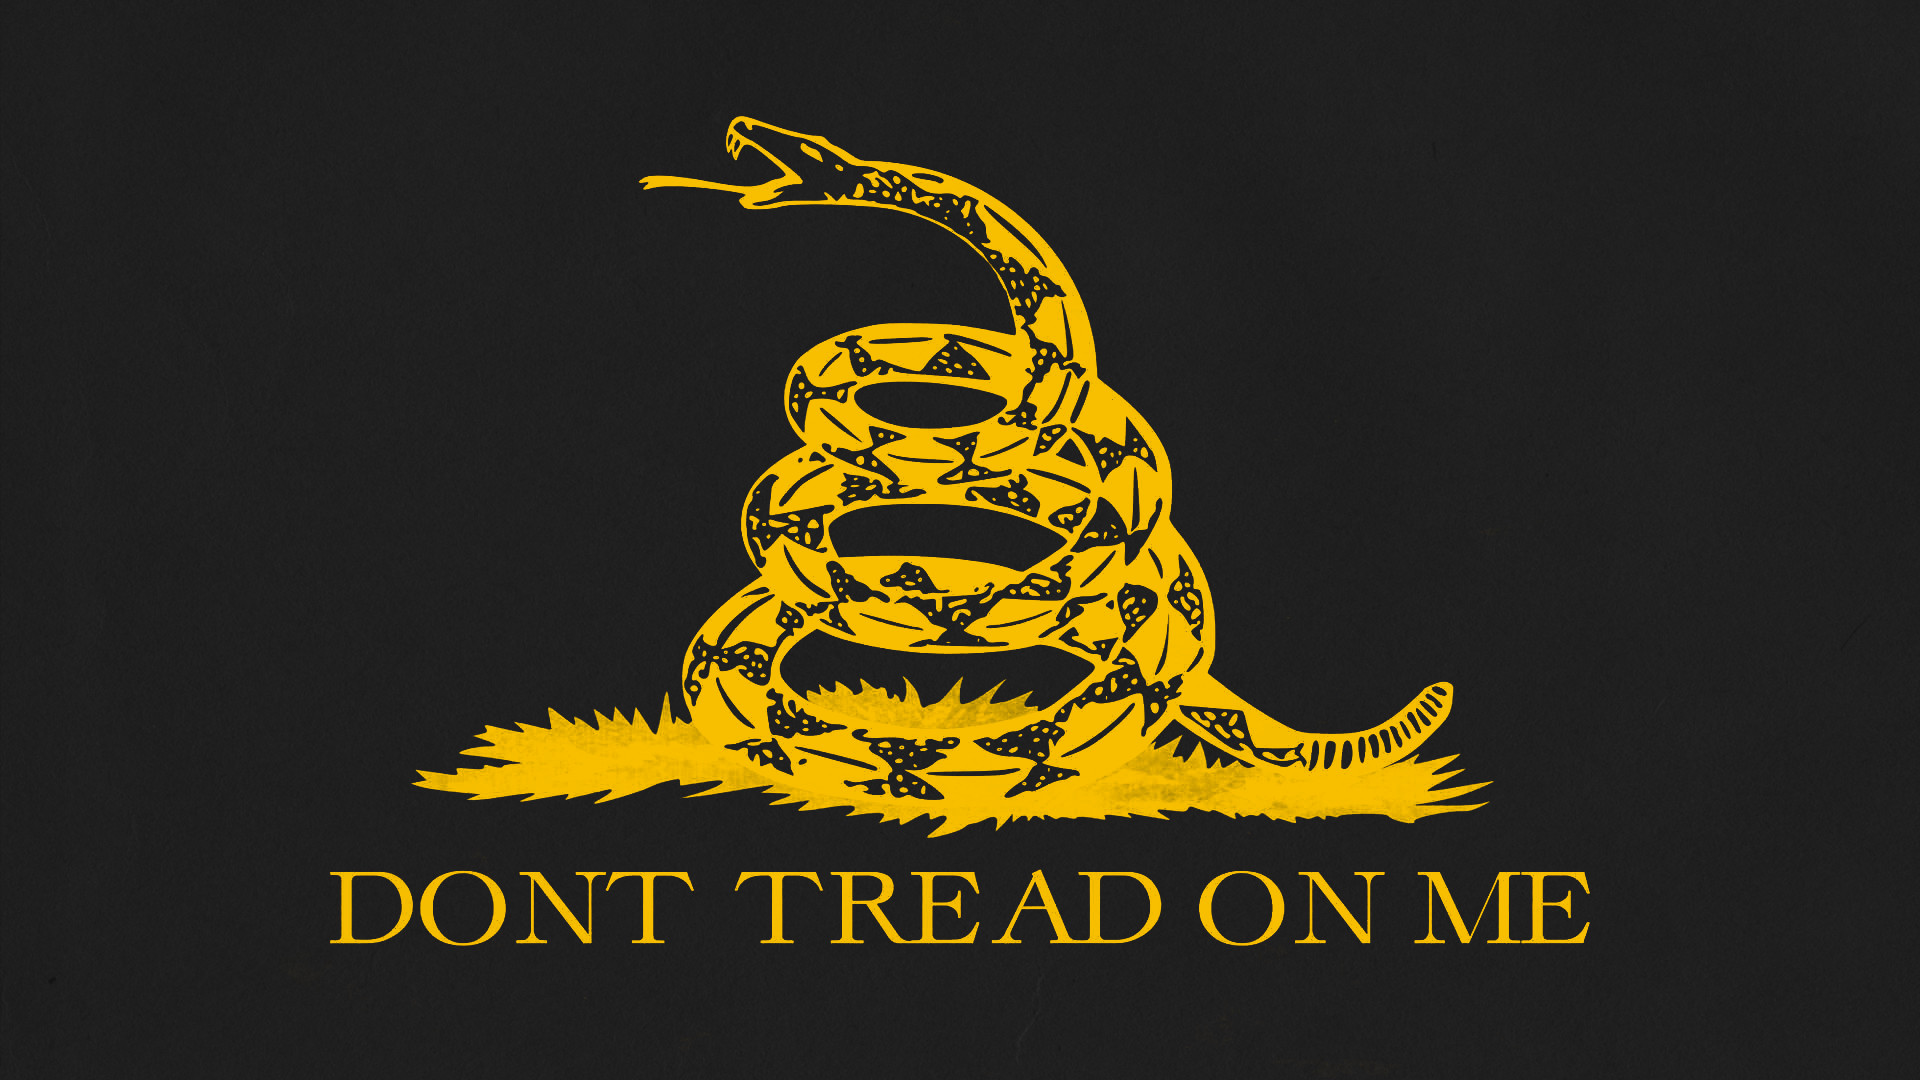 2560x1440 Wallpapers Hd Bible Quotes Dont Tread On Me Wallpaper 74 Images